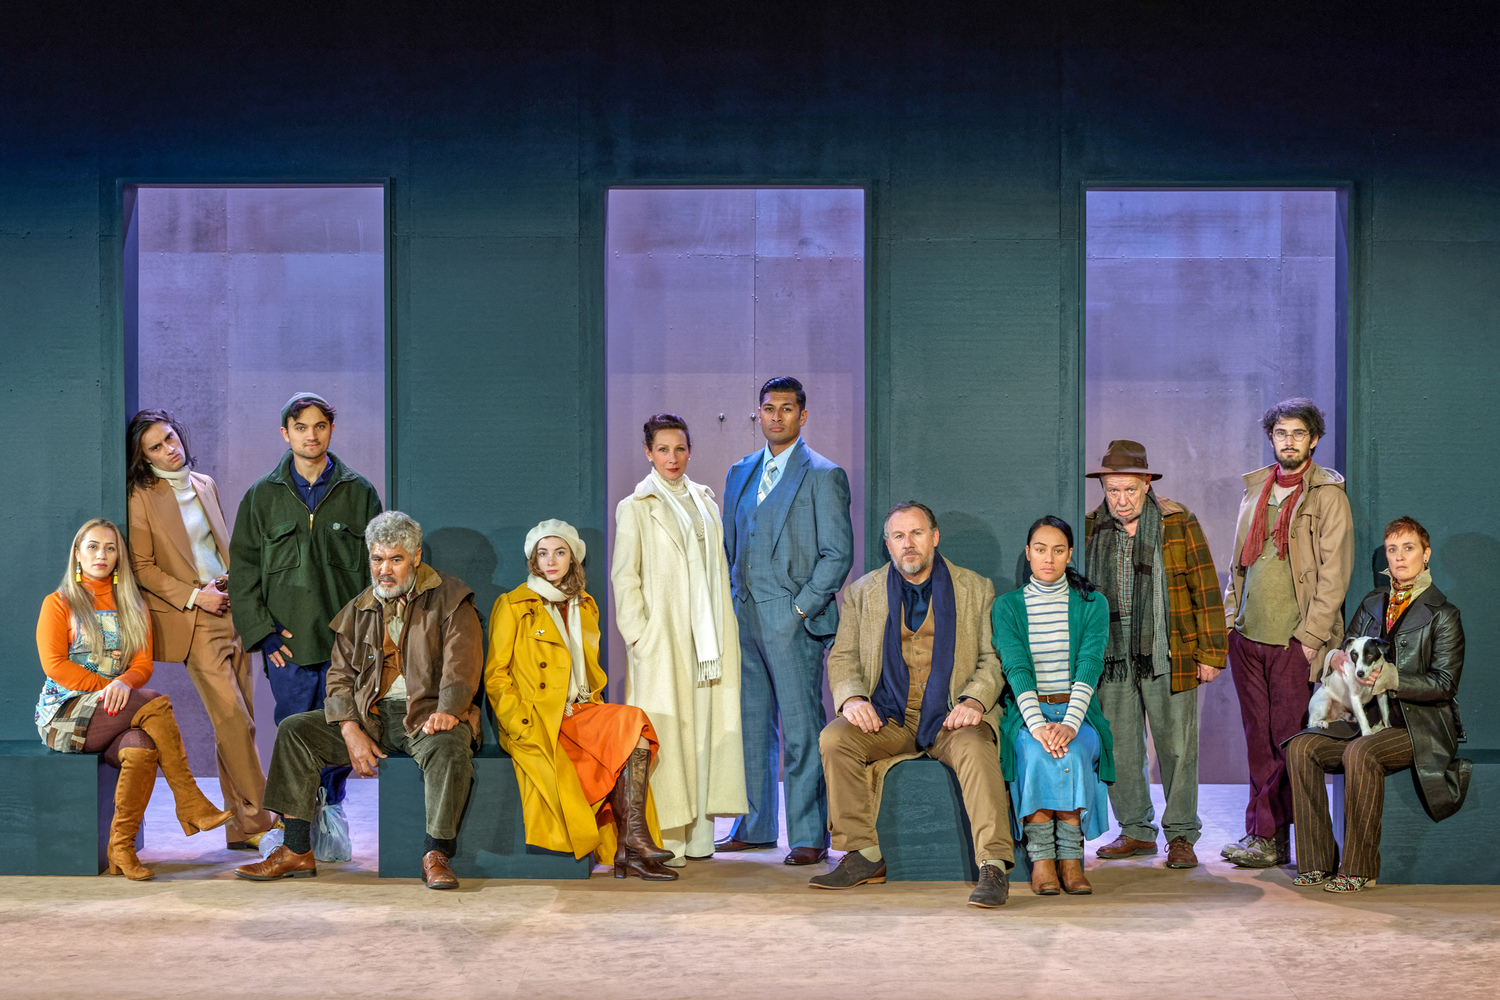 BWW Review: THE CHERRY ORCHARD at ASB Waterfront Theatre